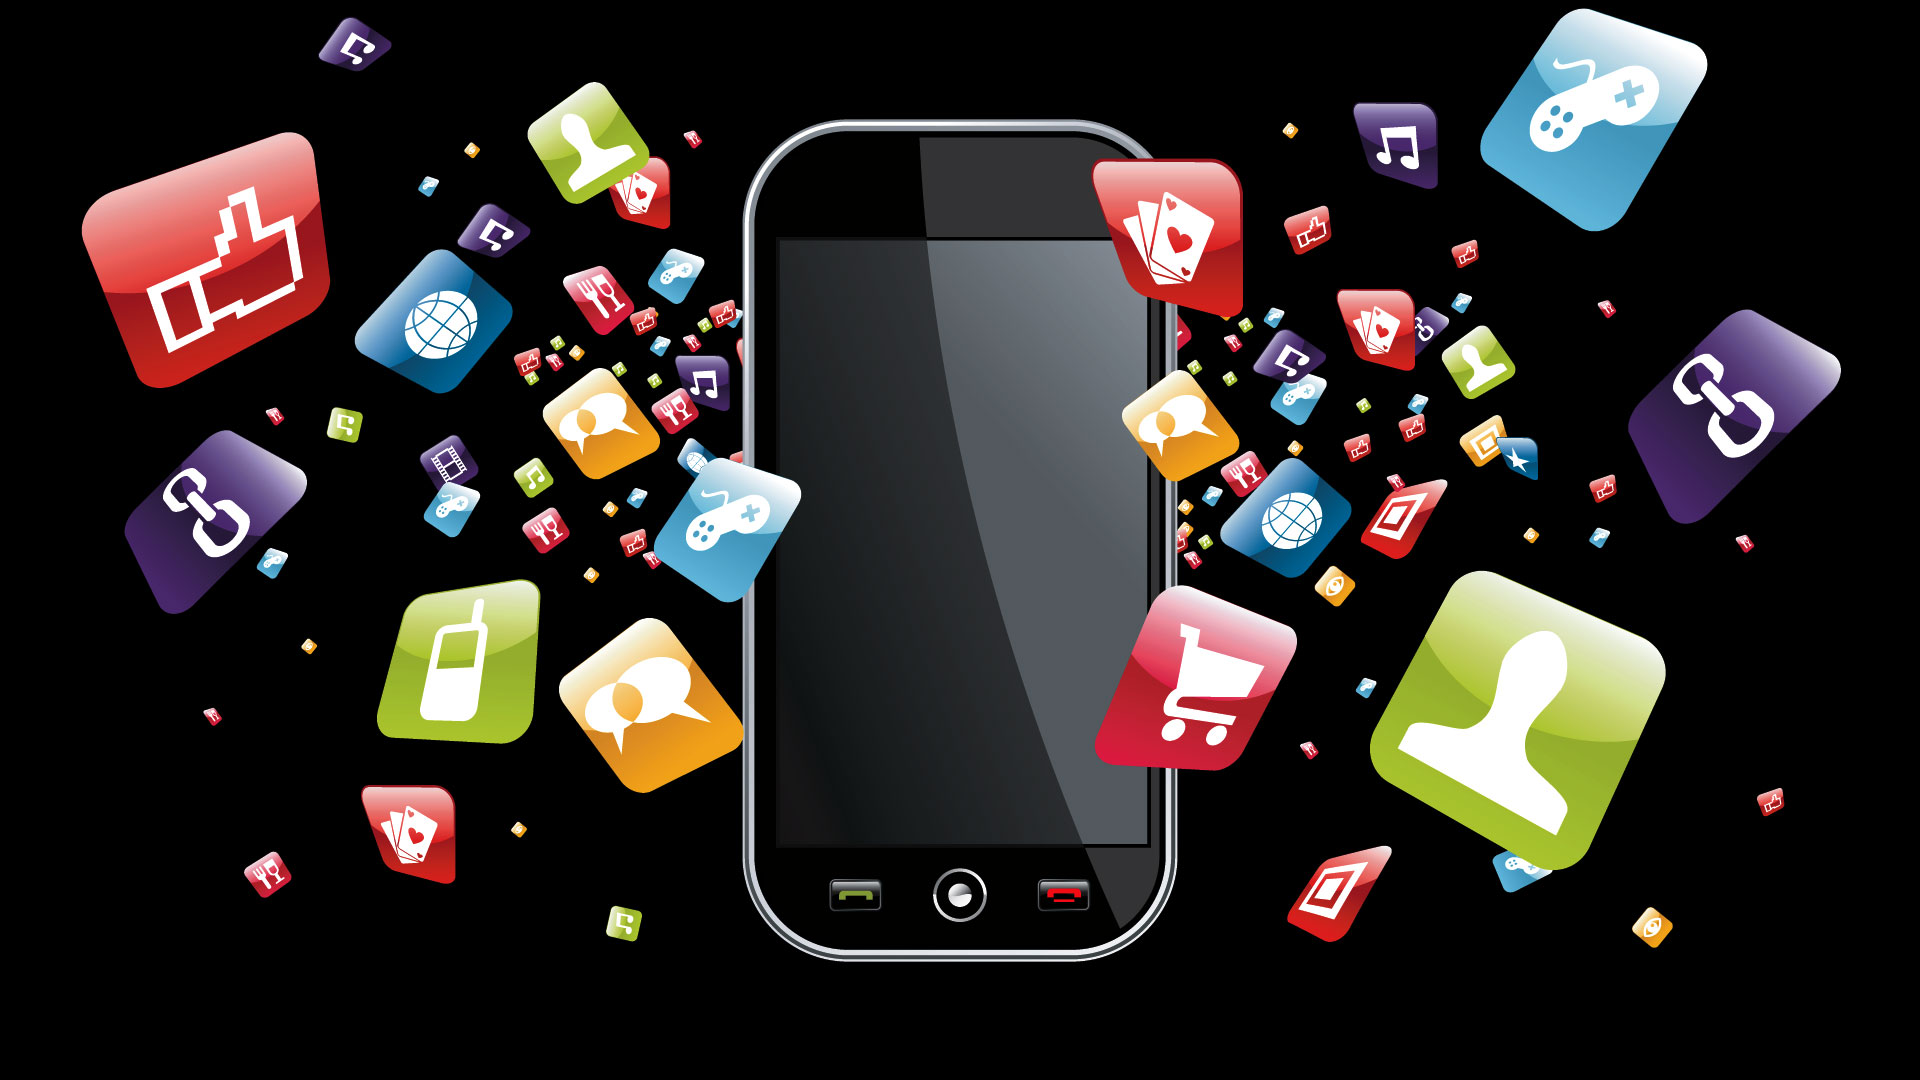 Nearly 85 percent of smartphone app time concentrated in top five ...